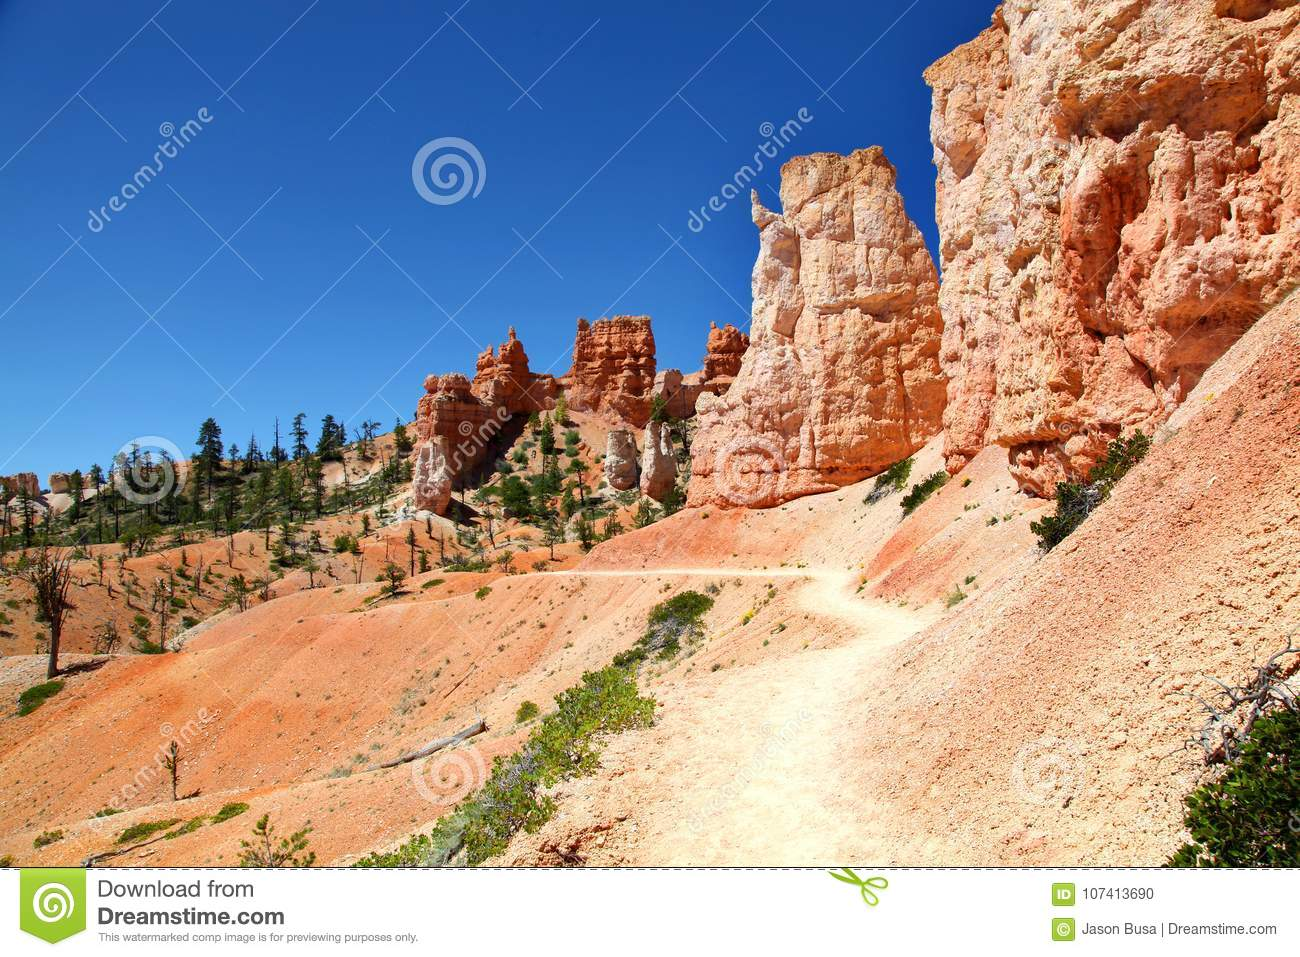 Hiking Along The Tower Bridge Trail In Bryce Canyon National Park Stock Photo Image Of Orange Desert 107413690